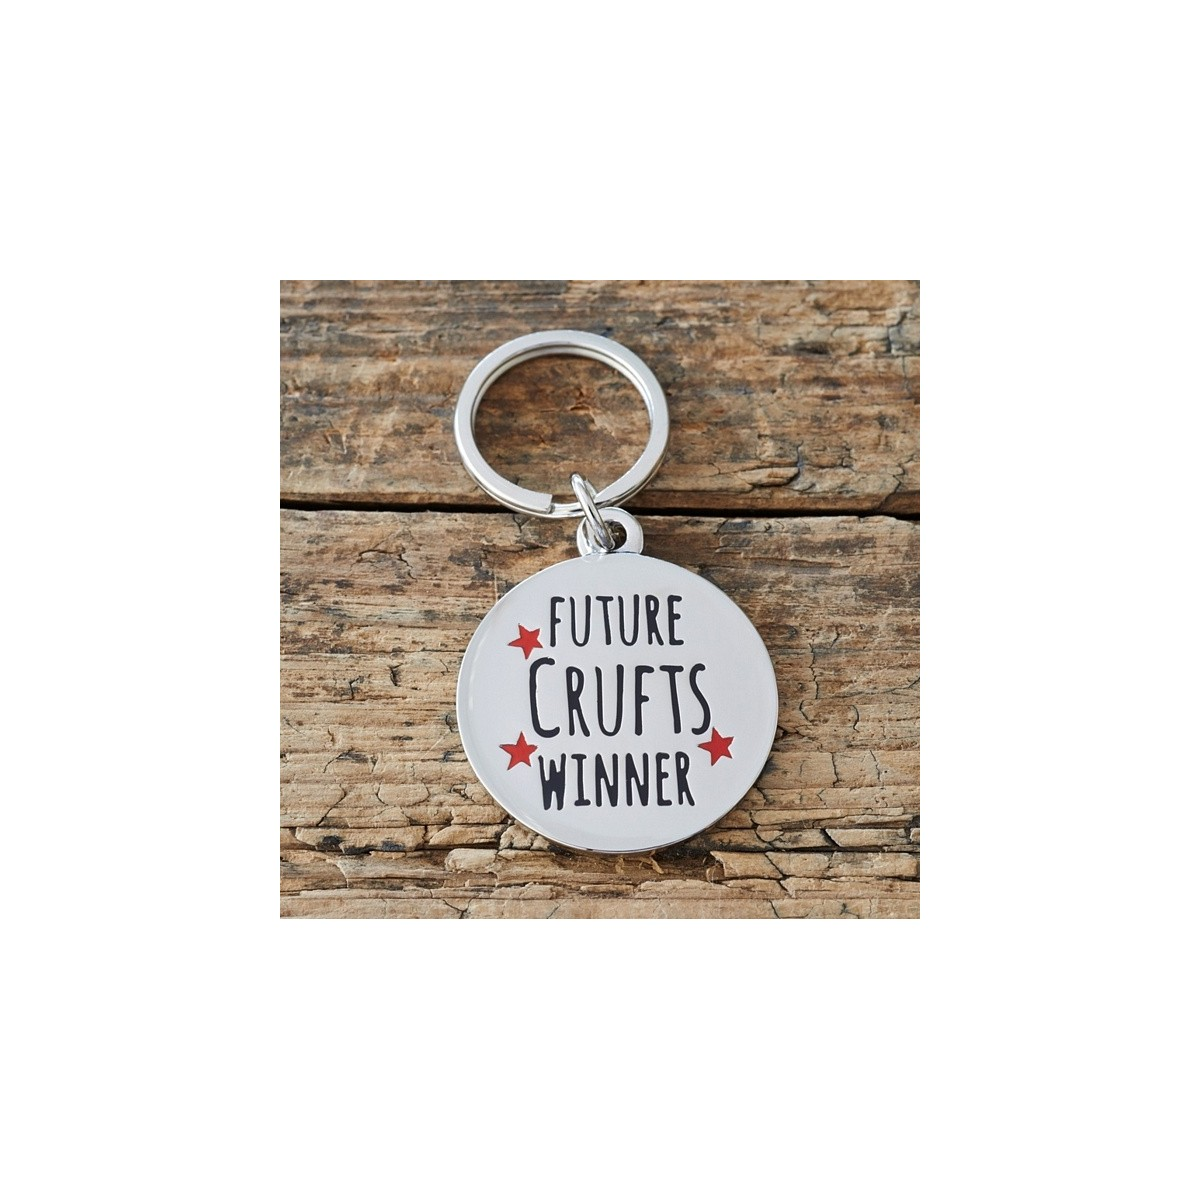 'Future Crufts Winner' Dog ID Tag | Designer Pet ID Tags Engraved